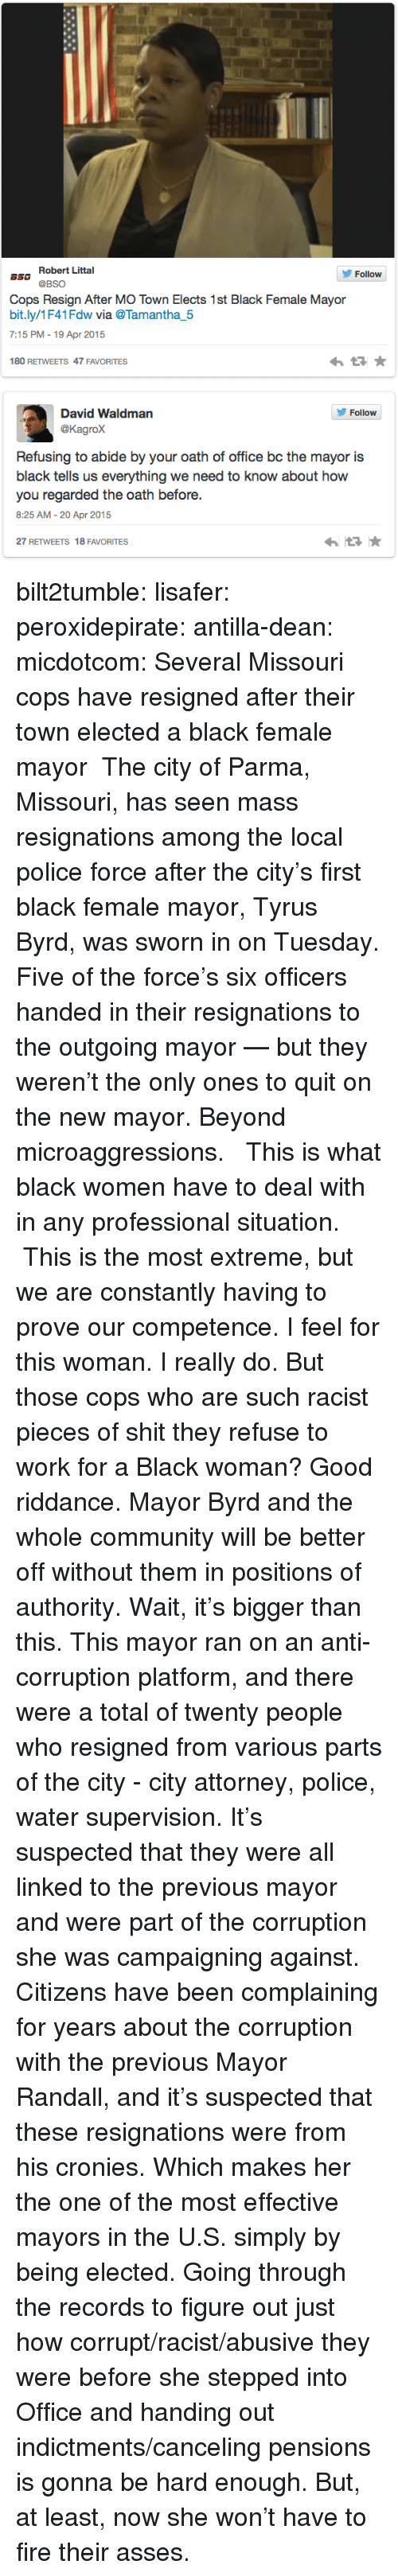 Pieces Of Shit: Robert Littal  Follow  aso @BSO  Cops Resign After MO Town Elects 1st Black Female Mayor  bit.ly/1F41Fdw wia @Tamantha5  7:15 PM - 19 Apr 2015  わ ★  180 RETWEETS 47 FAVORITES   David Waldman  @Kagrox  Follow  Refusing to abide by your oath of office bc the mayor is  black tells us everything we need to know about how  you regarded the oath before.  8:25 AM-20 Apr 2015  27 RETWEETS 18 FAVORITES bilt2tumble:  lisafer:  peroxidepirate:  antilla-dean:   micdotcom:    Several Missouri cops have resigned after their town elected a black female mayor  The city of Parma, Missouri, has seen mass resignations  among the local police force after the city's first black female  mayor, Tyrus Byrd, was sworn in on Tuesday. Five of the force's six officers handed in their resignations to the outgoing mayor — but they weren't the only ones to quit on the new mayor.   Beyond microaggressions.   This is what black women have to deal with in any professional situation.  This is the most extreme, but we are constantly having to prove our competence.   I feel for this woman. I really do.  But those cops who are such racist pieces of shit they refuse to work for a Black woman? Good riddance. Mayor Byrd and the whole community will be better off without them in positions of authority.  Wait, it's bigger than this. This mayor ran on an anti-corruption platform, and there were a total of twenty people who resigned from various parts of the city - city attorney, police, water supervision.  It's suspected that they were all linked to the previous mayor and were part of the corruption she was campaigning against. Citizens have been complaining for years about the corruption with the previous Mayor Randall, and it's suspected that these resignations were from his cronies.  Which makes her the one of the most effective mayors in the U.S. simply by being elected.   Going through the records to figure out just how corrupt/racist/abusive they were before she stepped into Office and handing out indictments/canceling pensions is gonna be hard enough. But, at least, now she won't have to fire their asses.